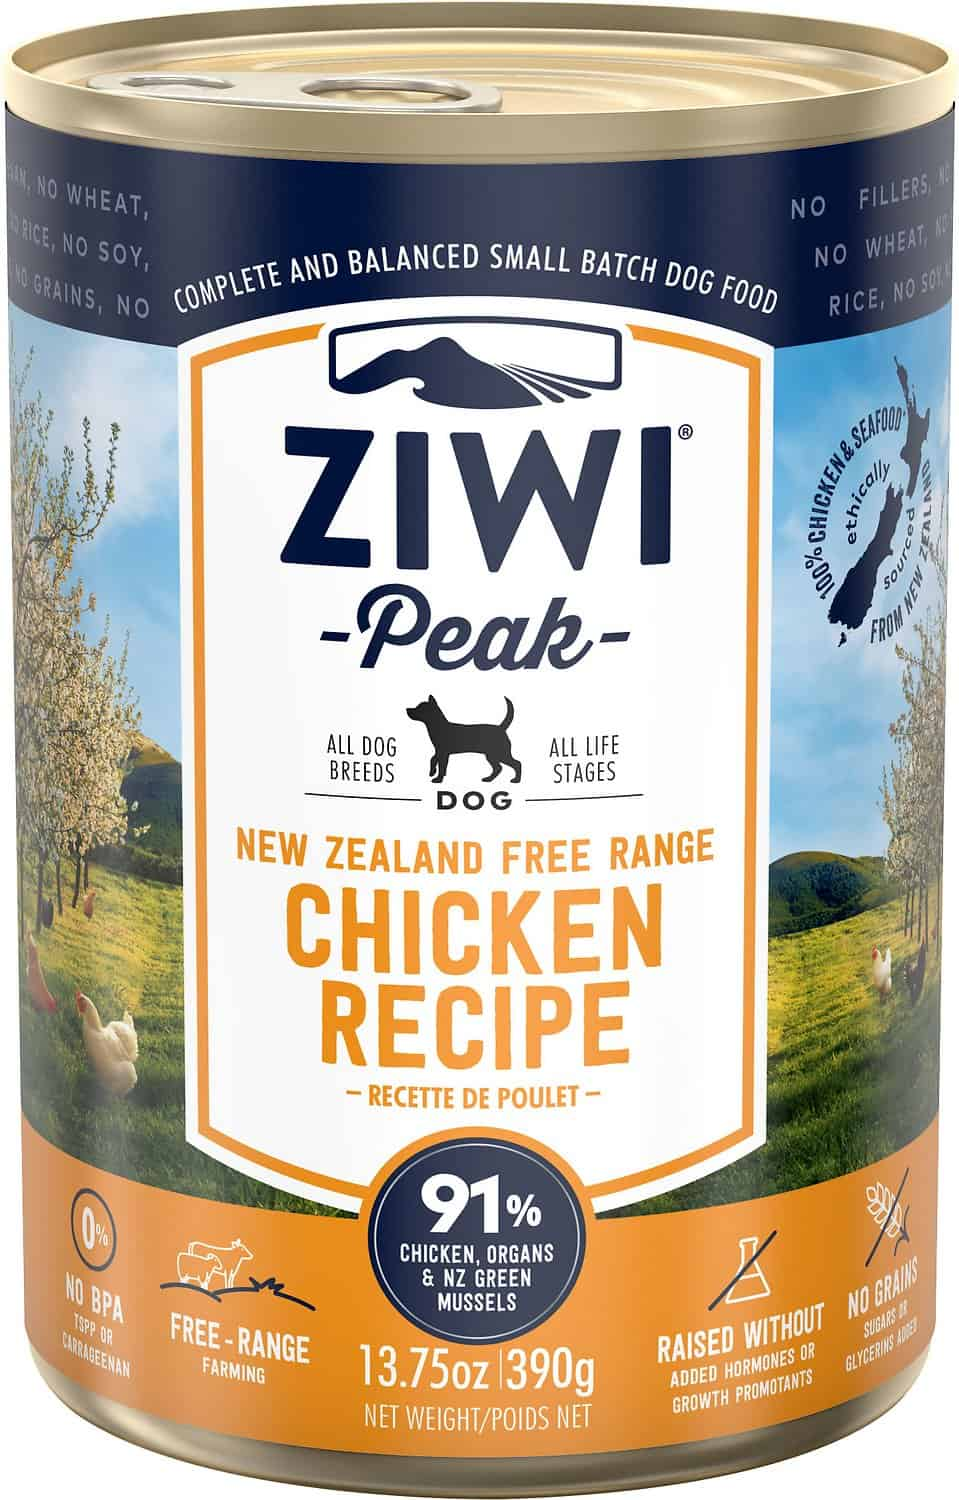 ZiwiPeak Dog Food Review 2020: Taste of Life in New Zealand 22